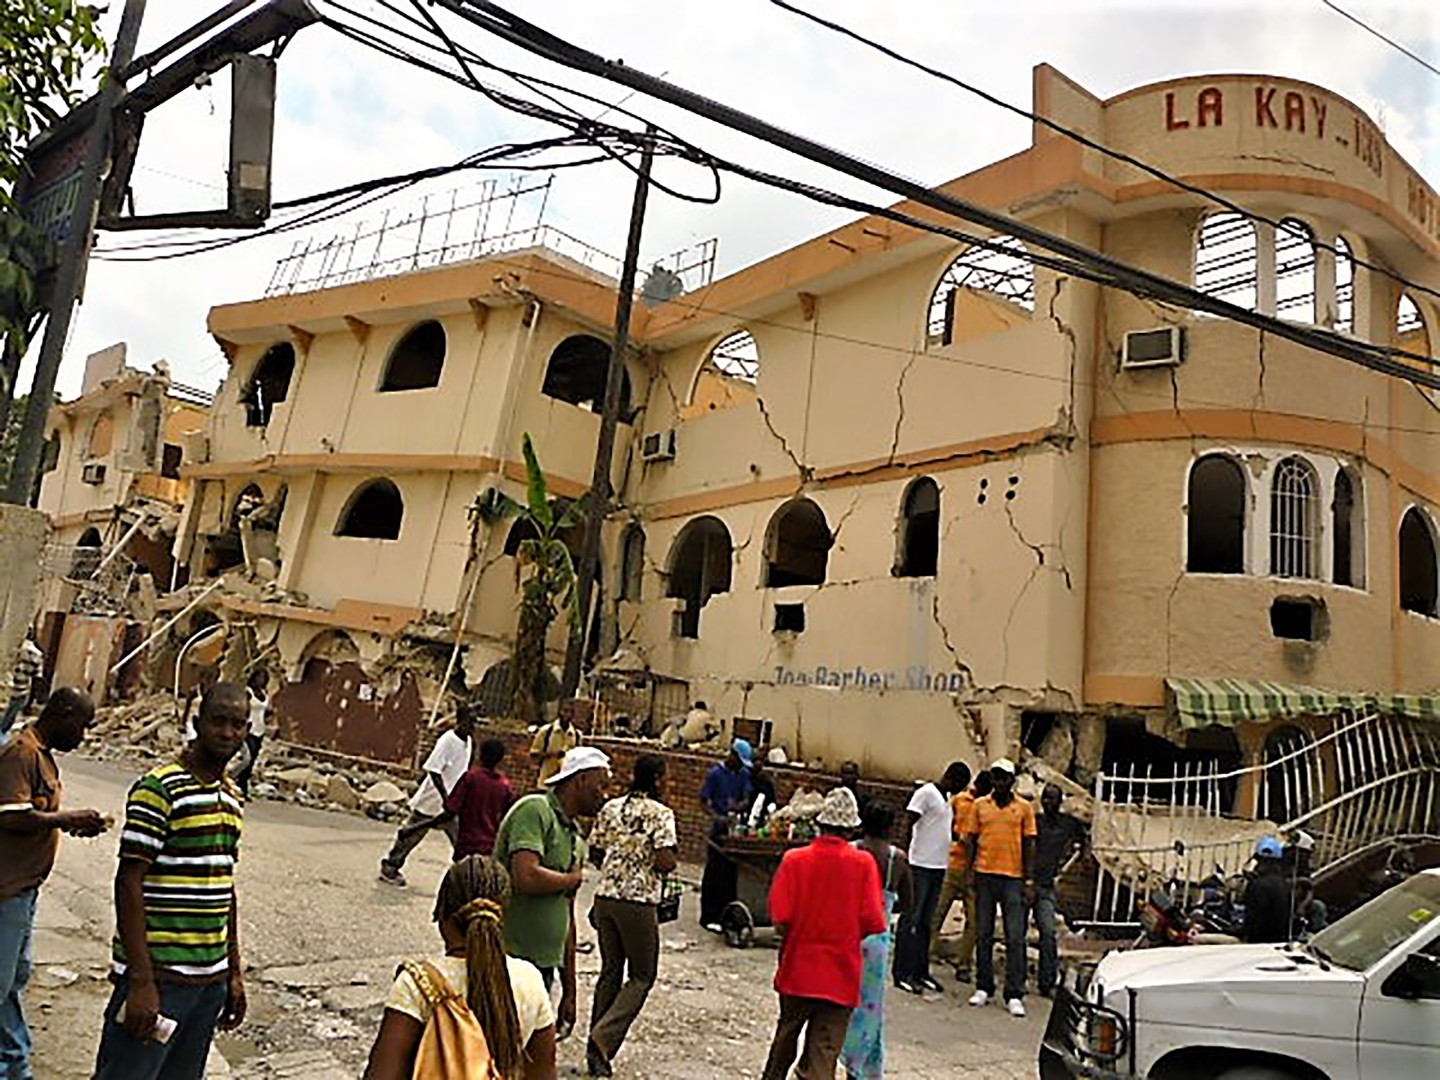 Destruction after the earthquake in Haiti - 2010